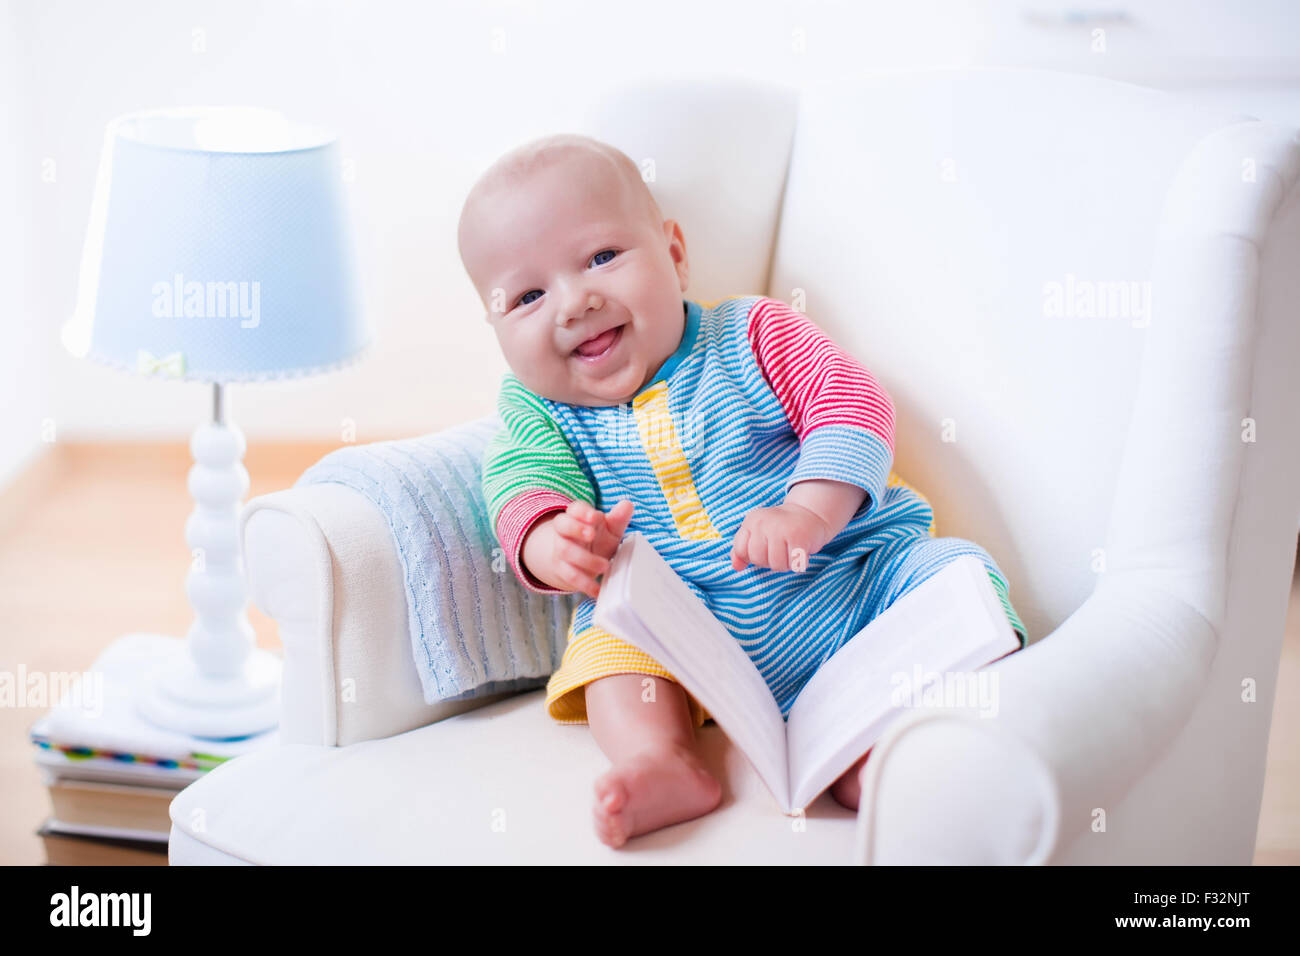 Cute Funny Baby Boy Reading A Book Sitting In A White Chair